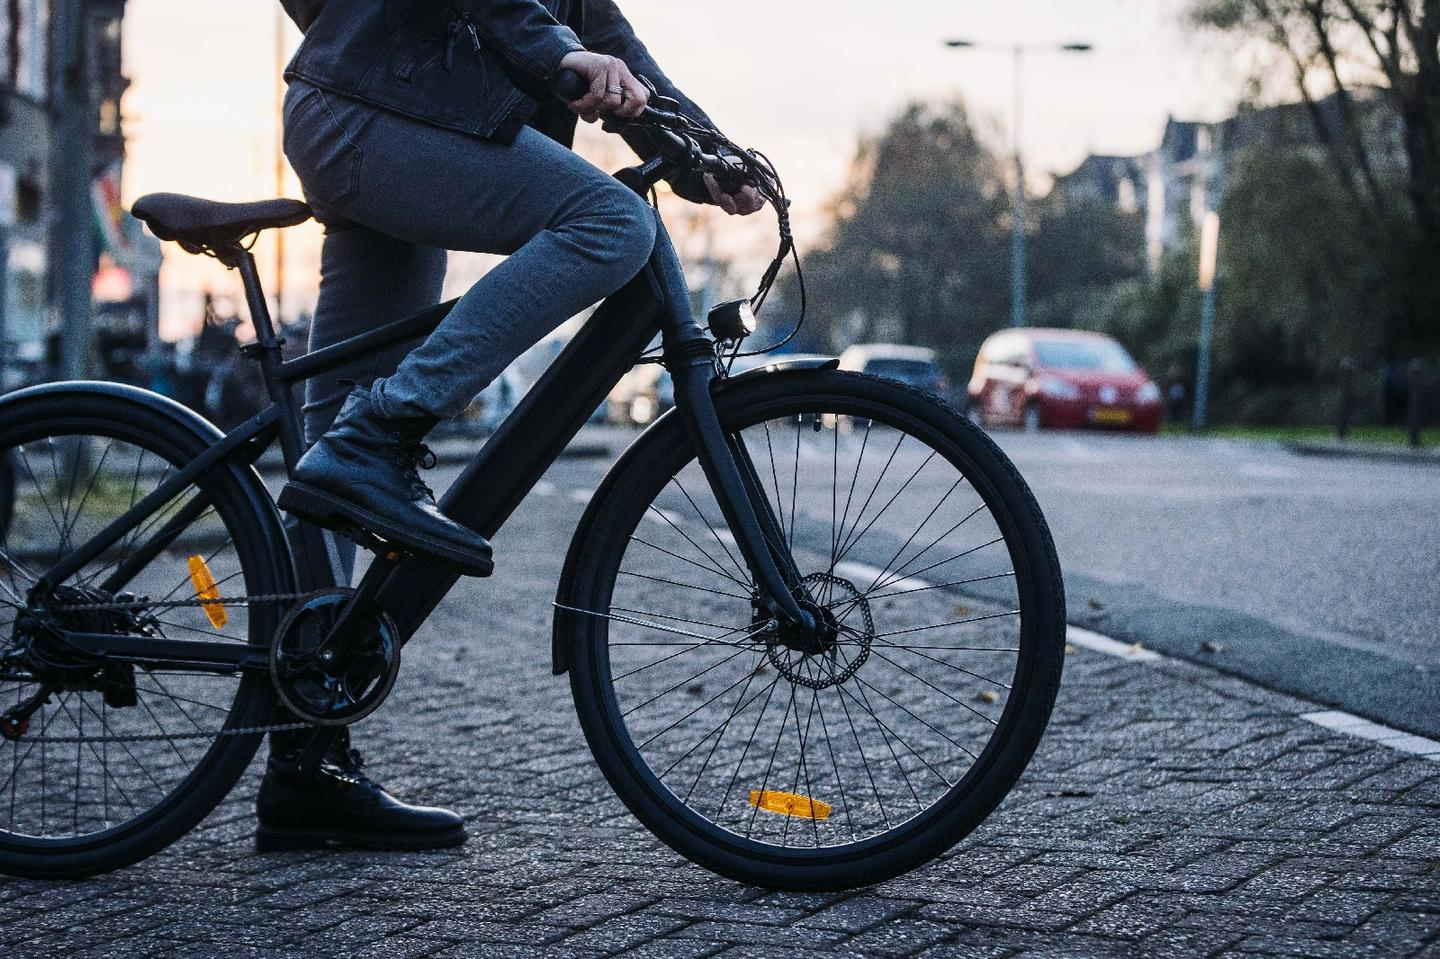 The Three Phase One ebike comes in Base and Boost models